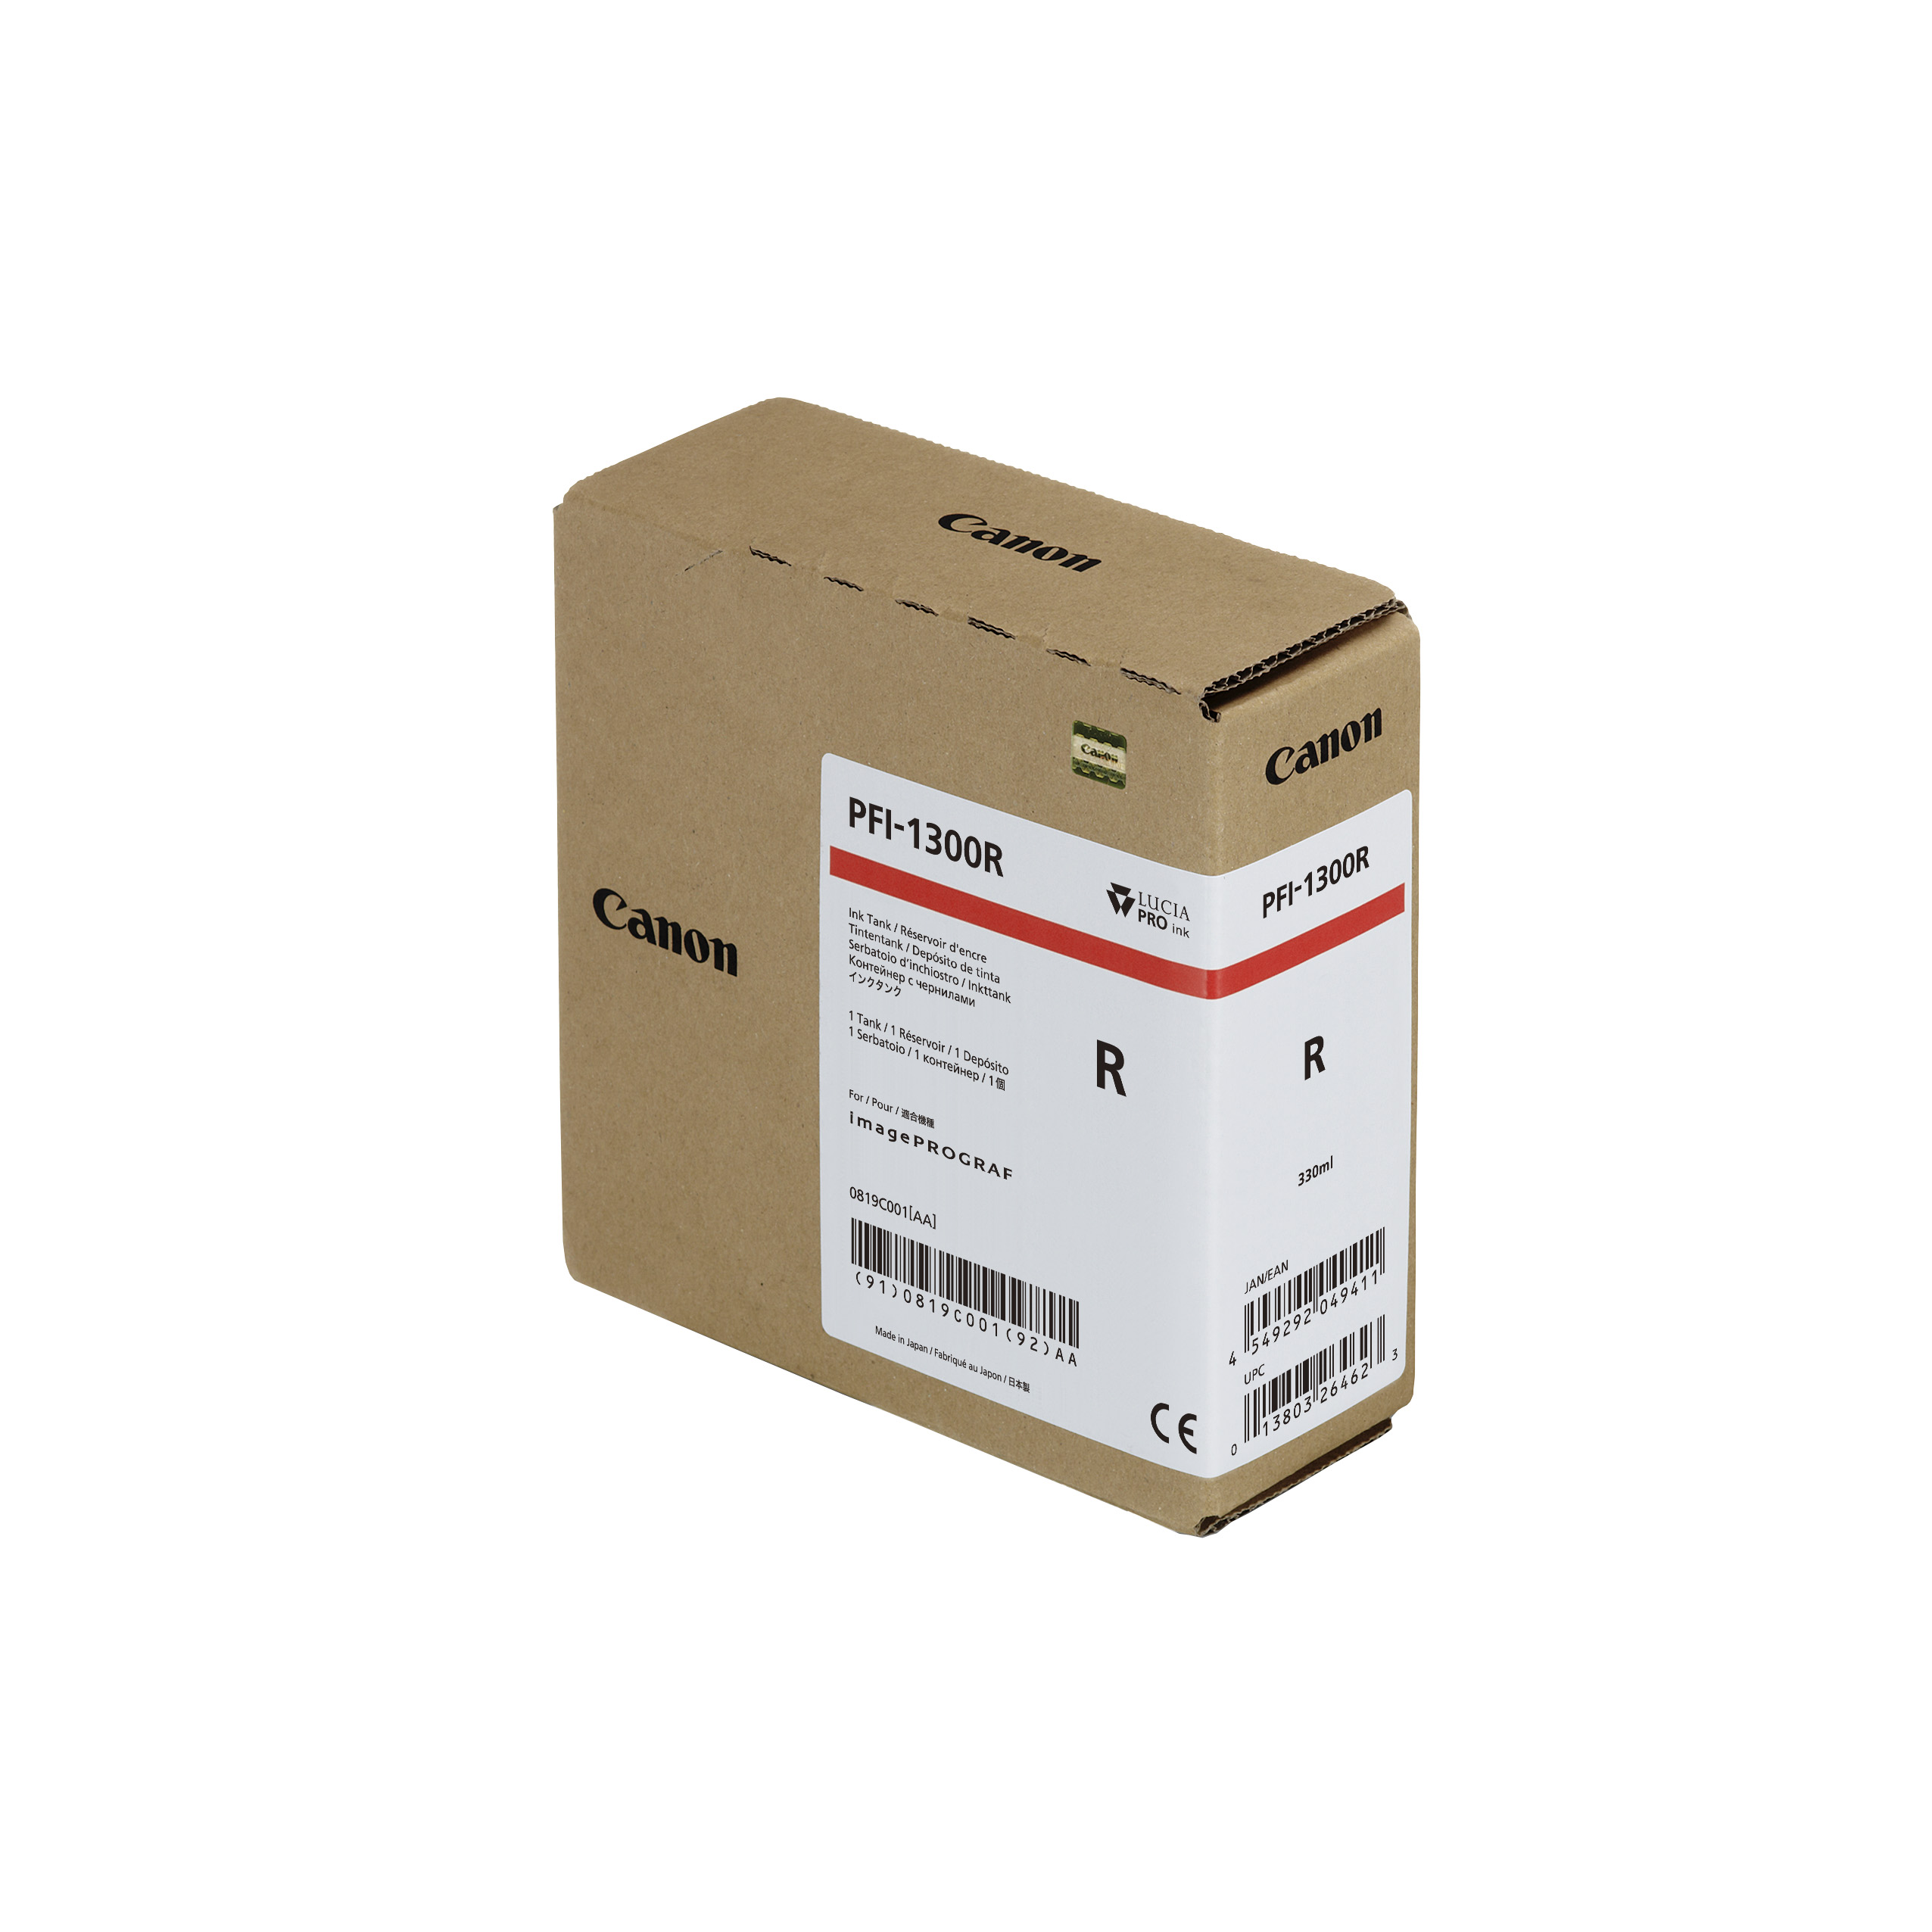 Canon PFI-1300R Red Ink Tank - 330ml Cartridge - for Canon PRO-2000, PRO-4000 Printer - 0819C001AA - next day delivery from GDS Graphic Design Supplies Ltd